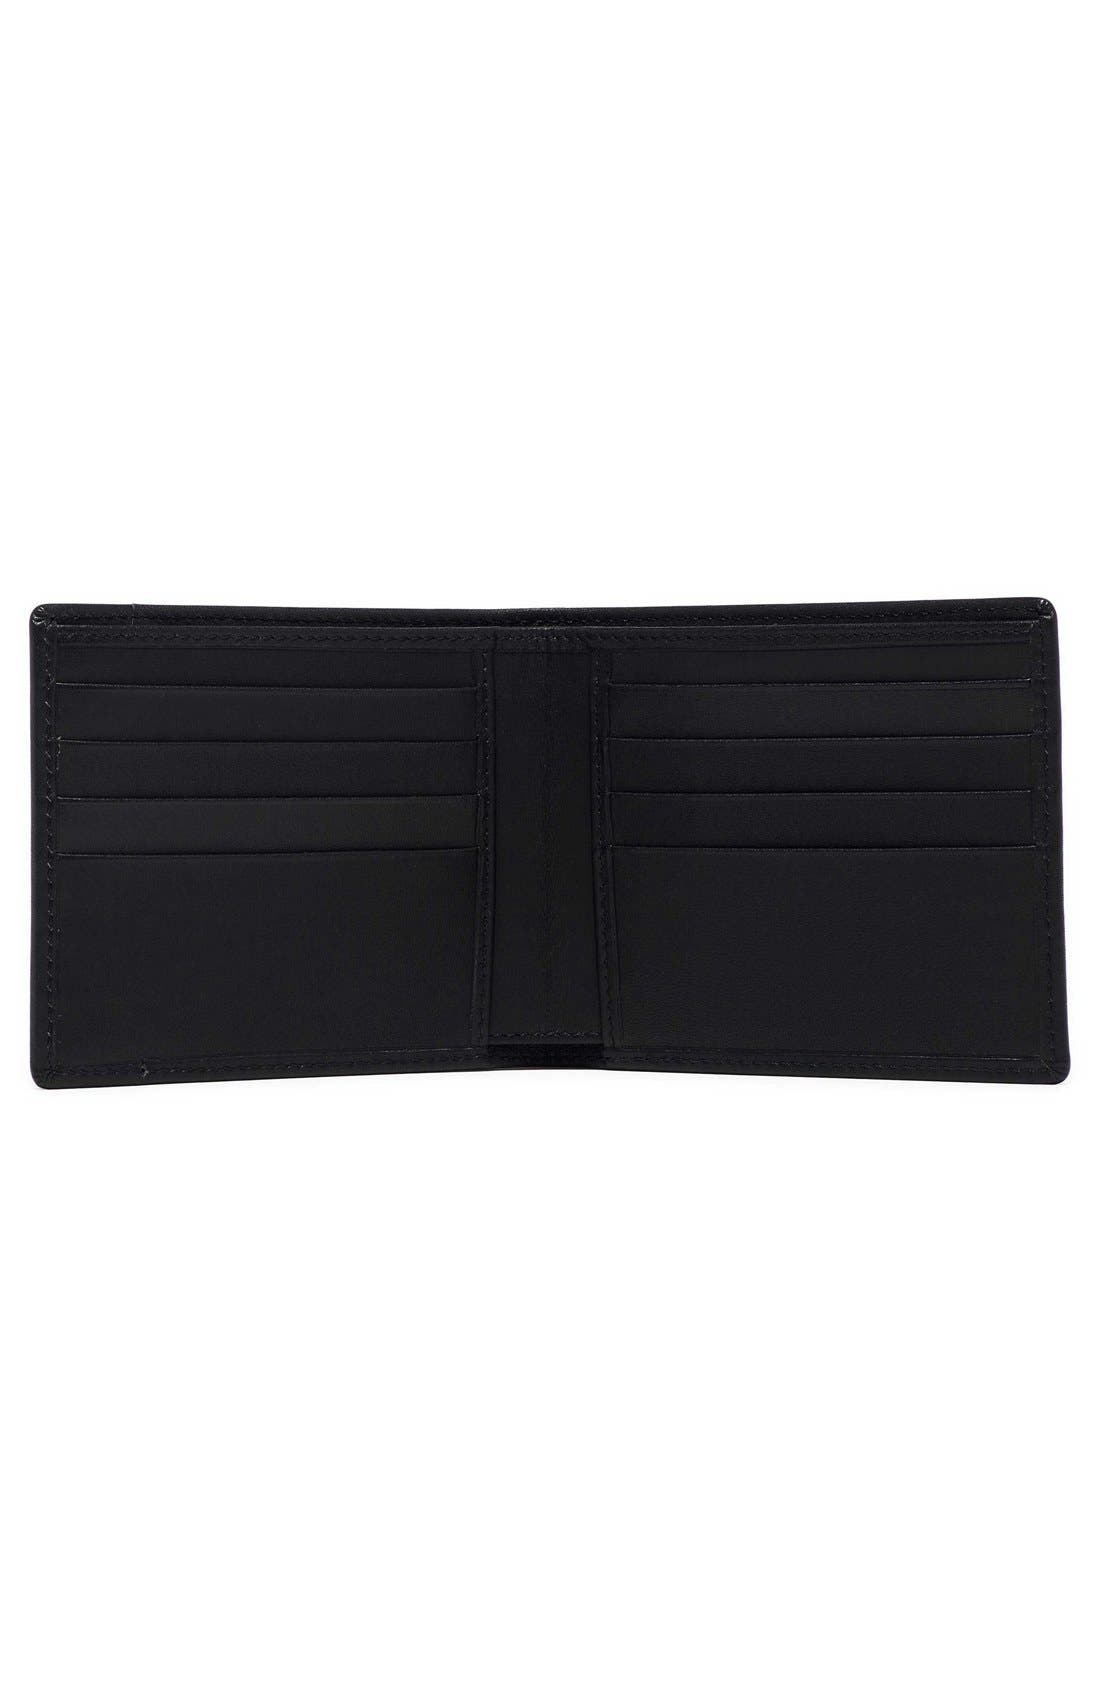 Alternate Image 2  - Ghurka Classic Leather Wallet